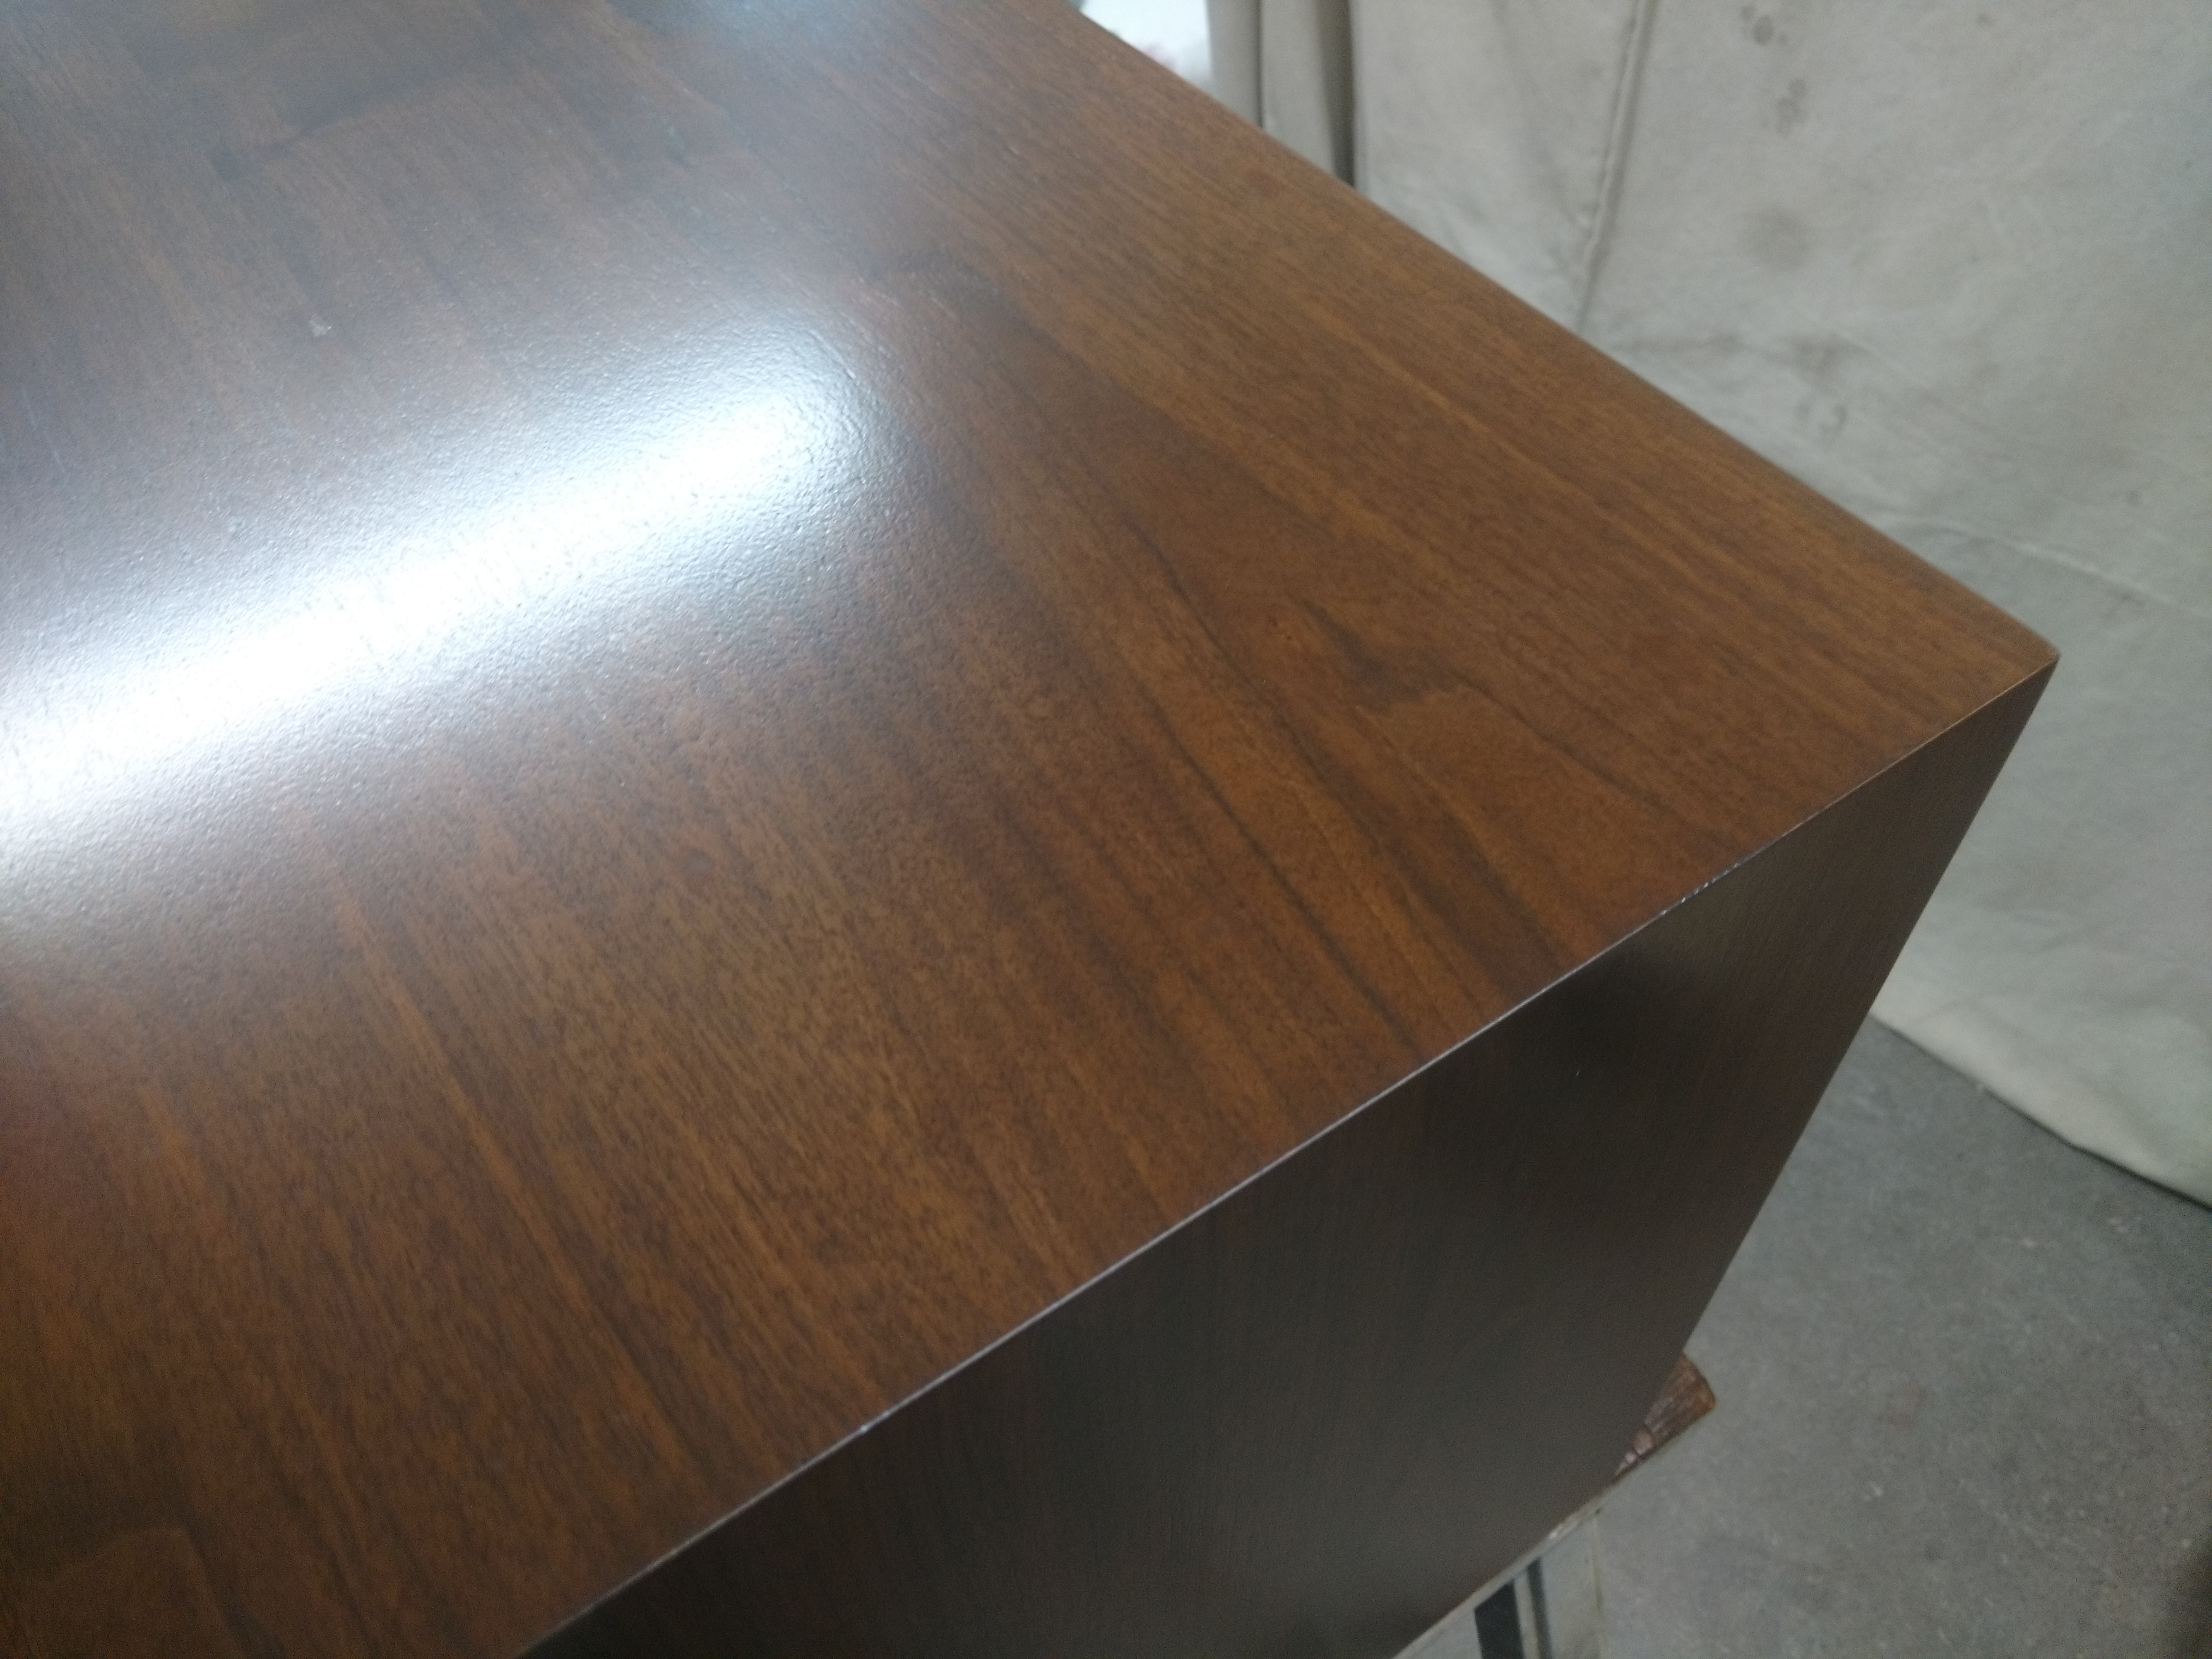 Jens Risom Credenza: Holes in top, finished repair.